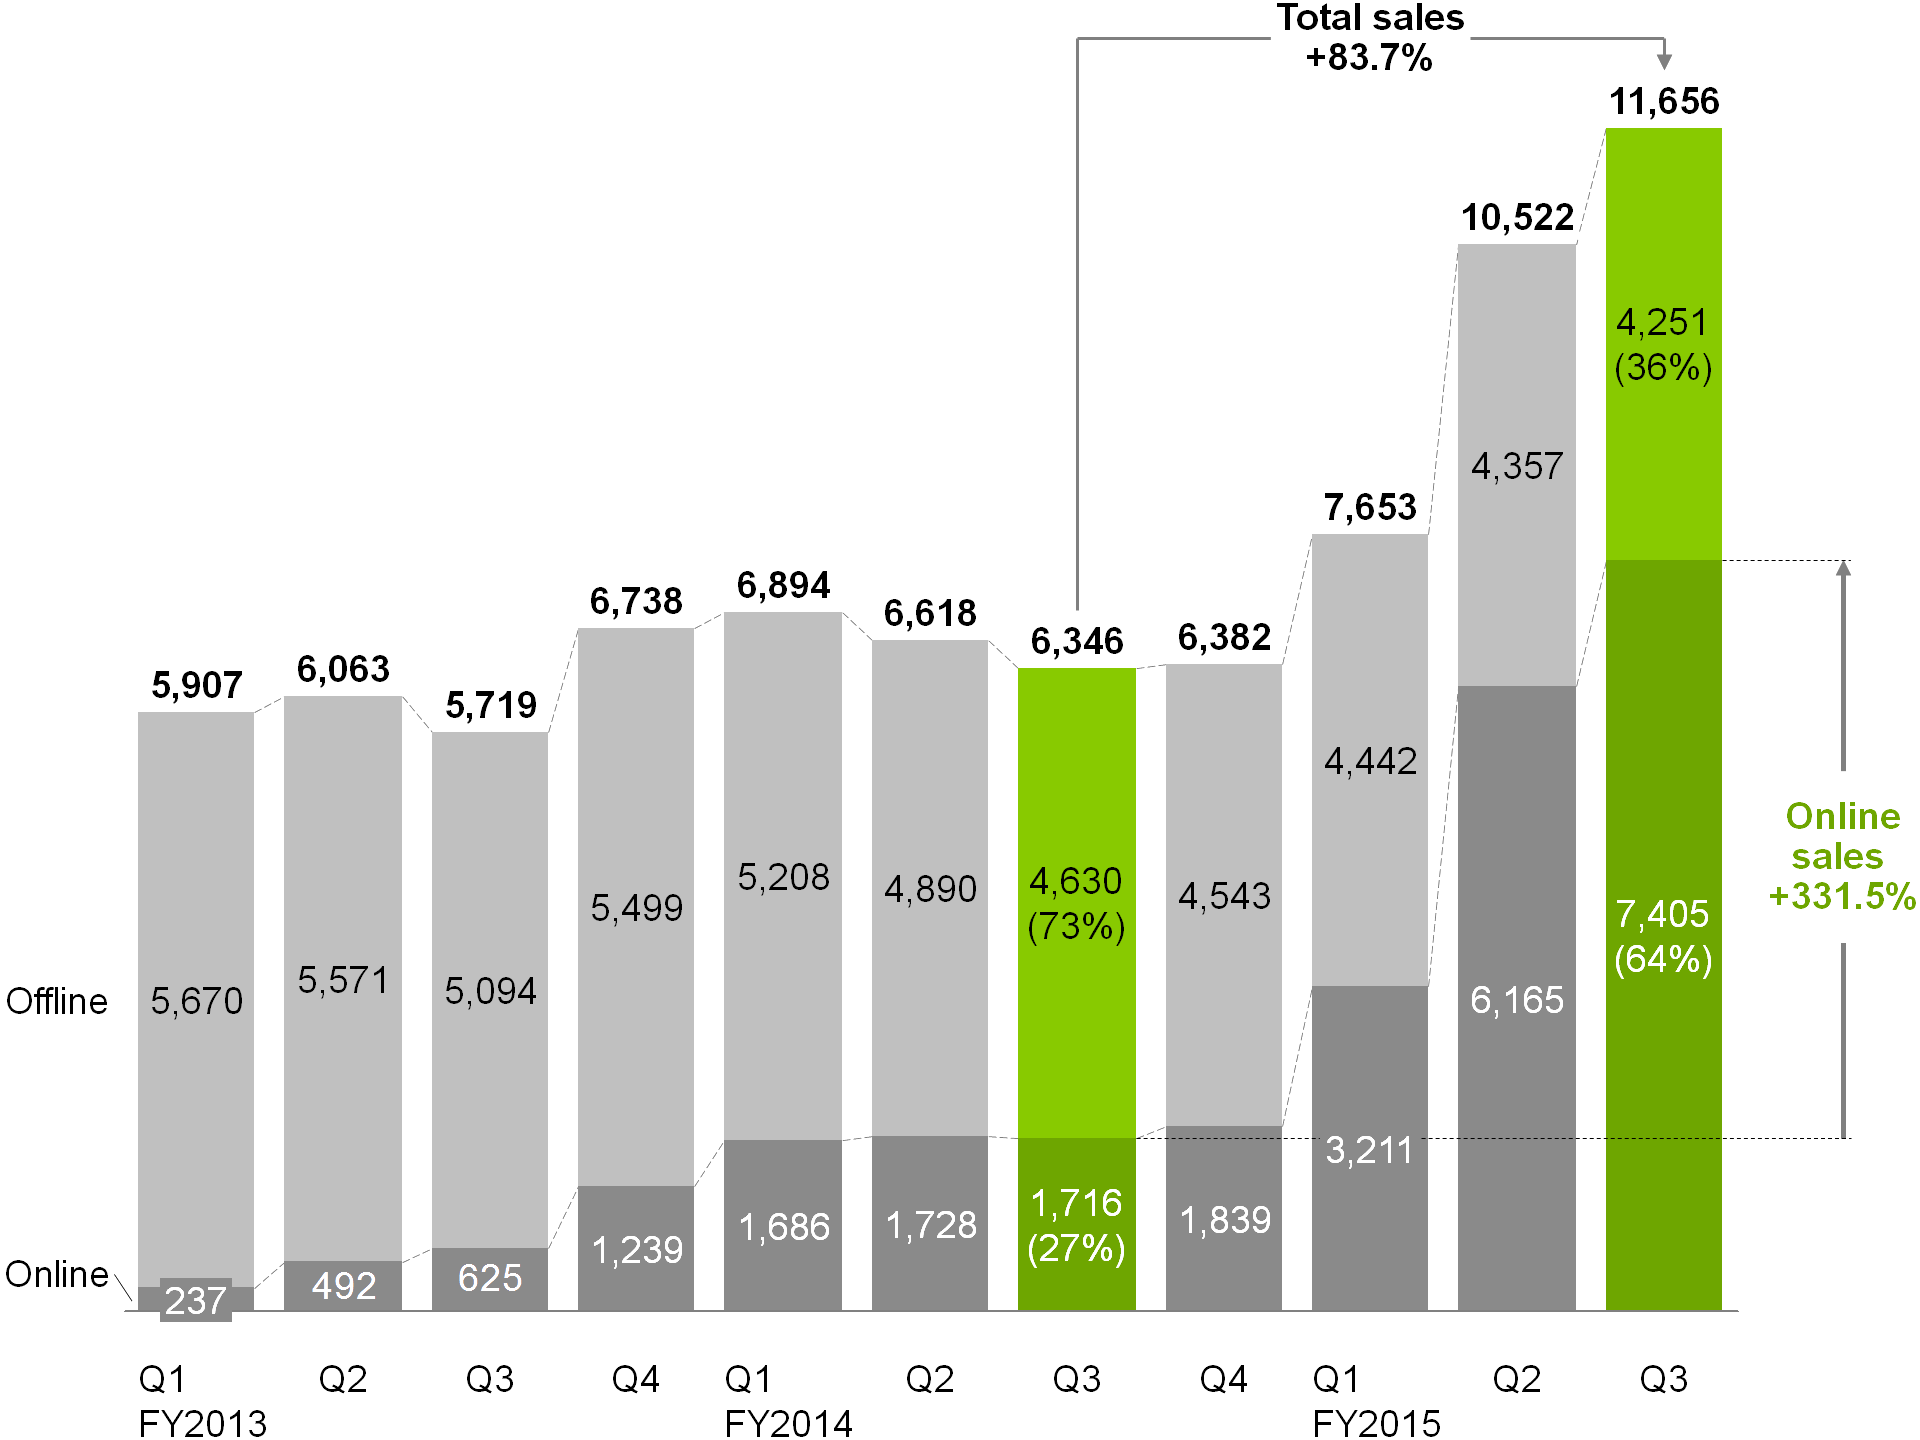 Sales revenue bar chart with arrows and labels